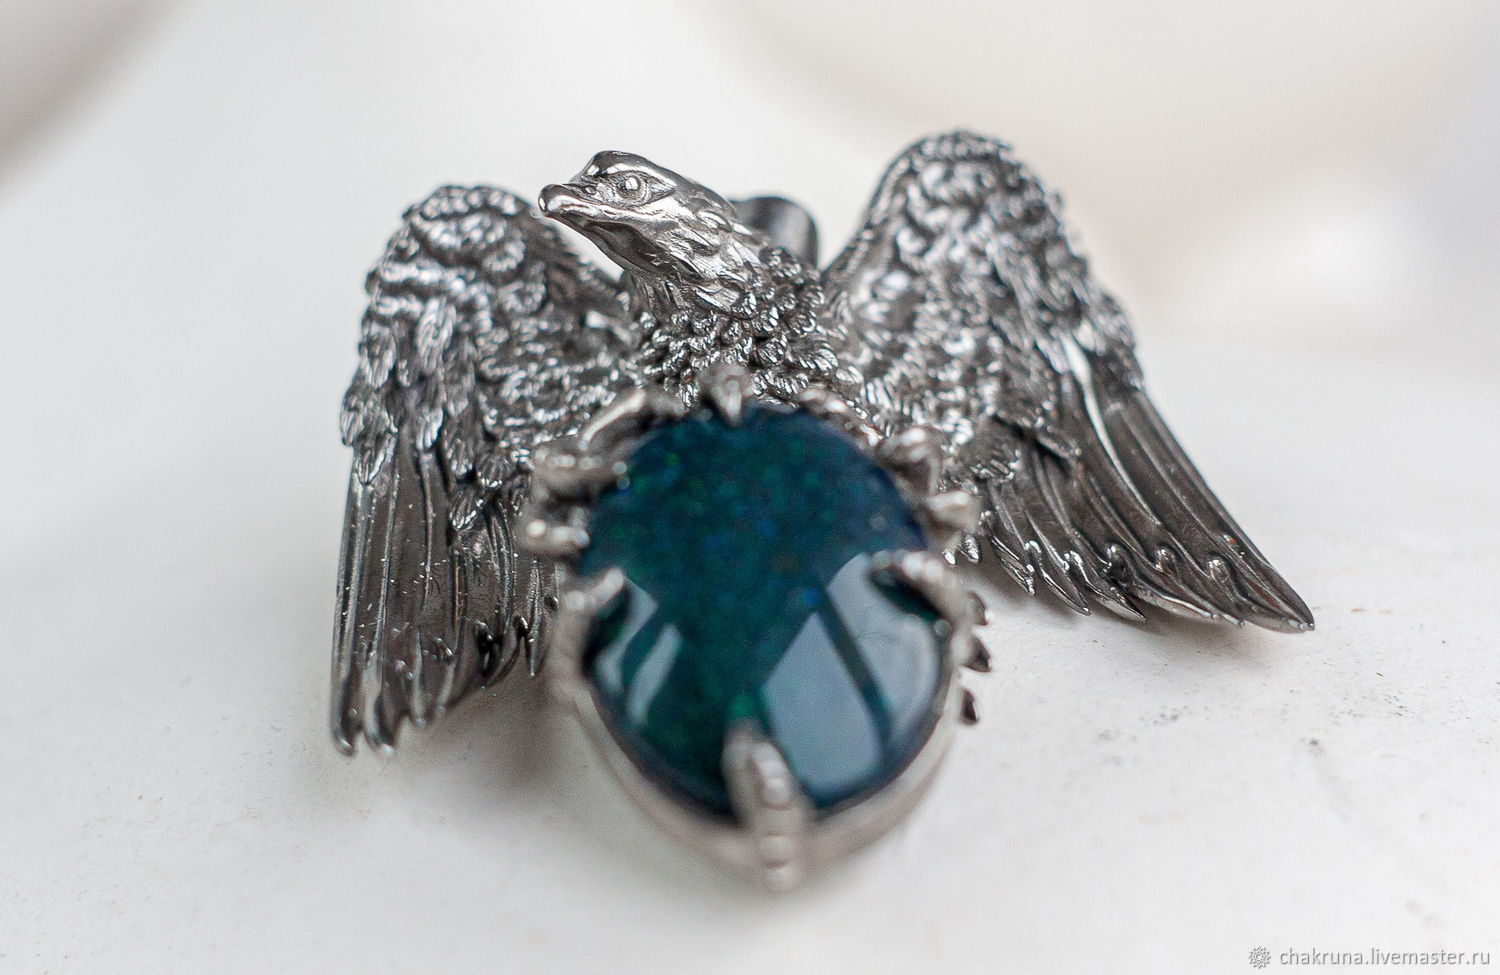 Massive silver eagle pendant with opal ' Alerion', Pendants, Moscow,  Фото №1